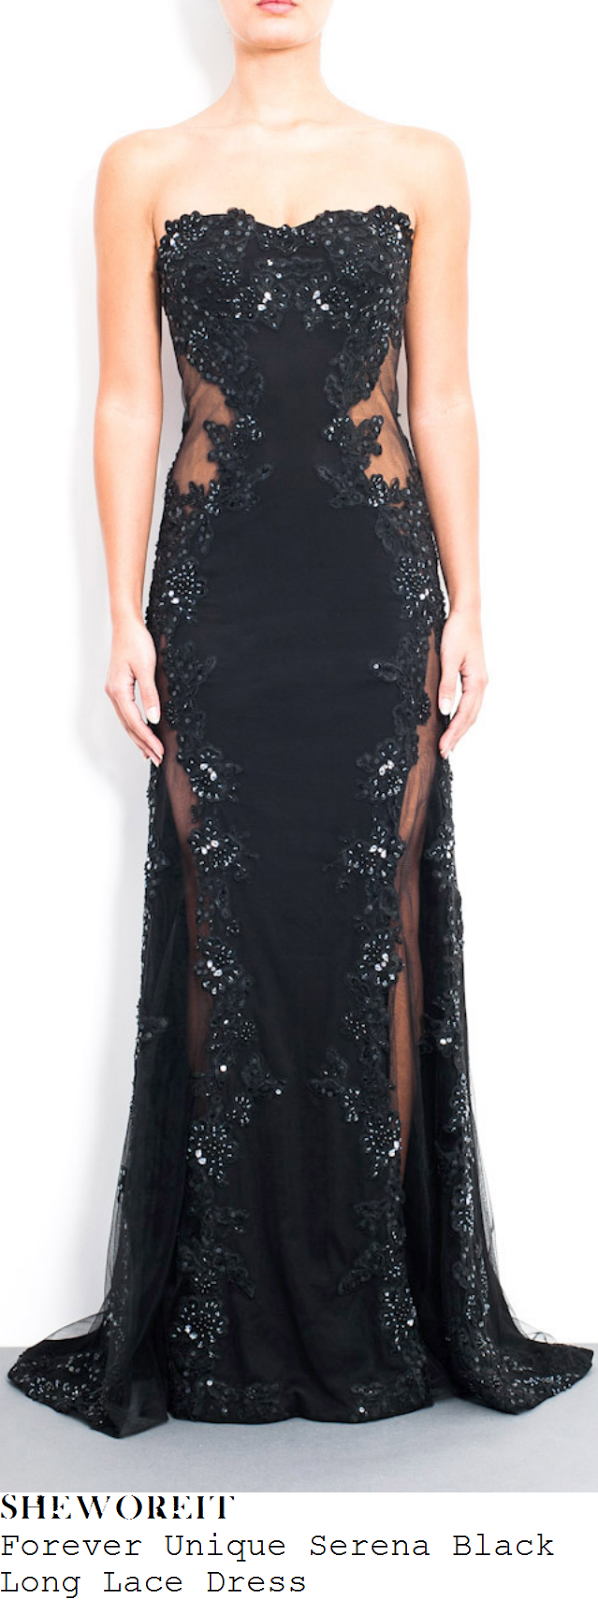 catherine-tyldesley-black-strapless-sequin-bead-embellished-lace-mesh-dress